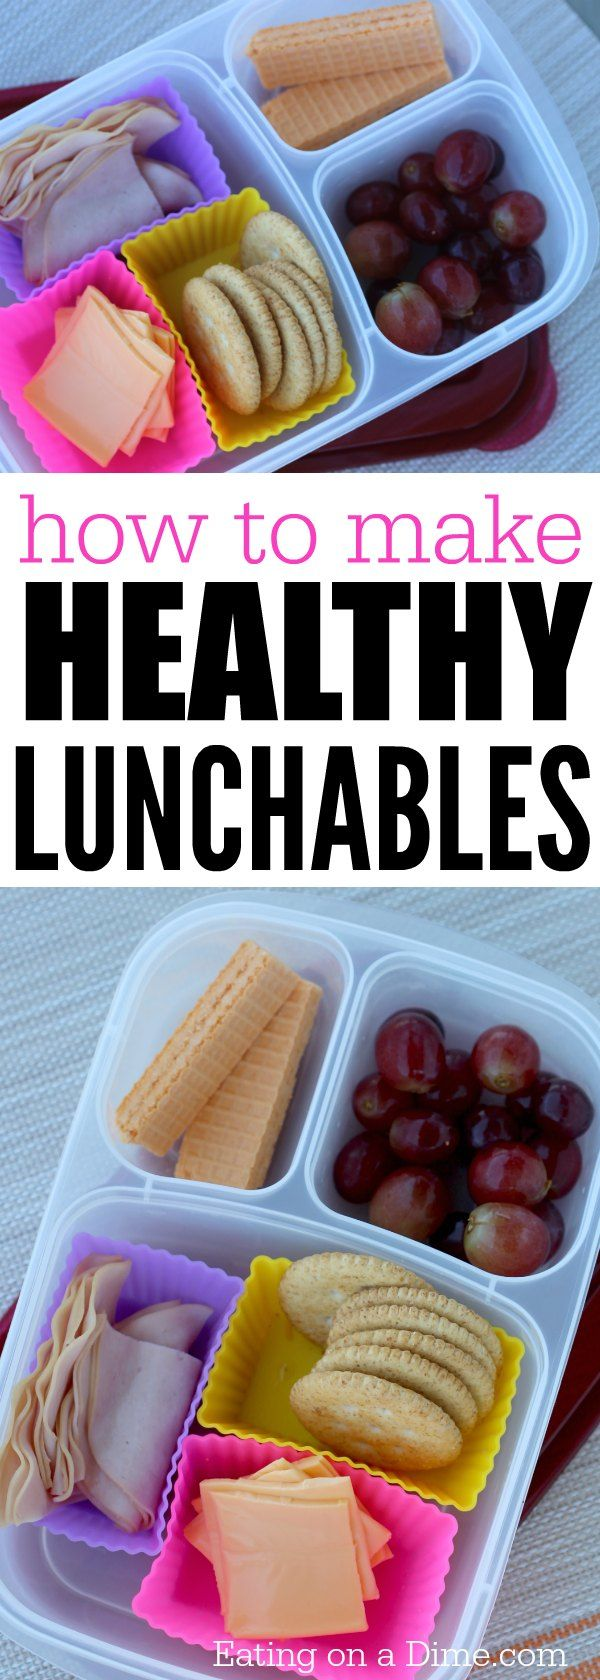 1000 Images About Kids Lunches On Pinterest Fun For Kids Homemade And At